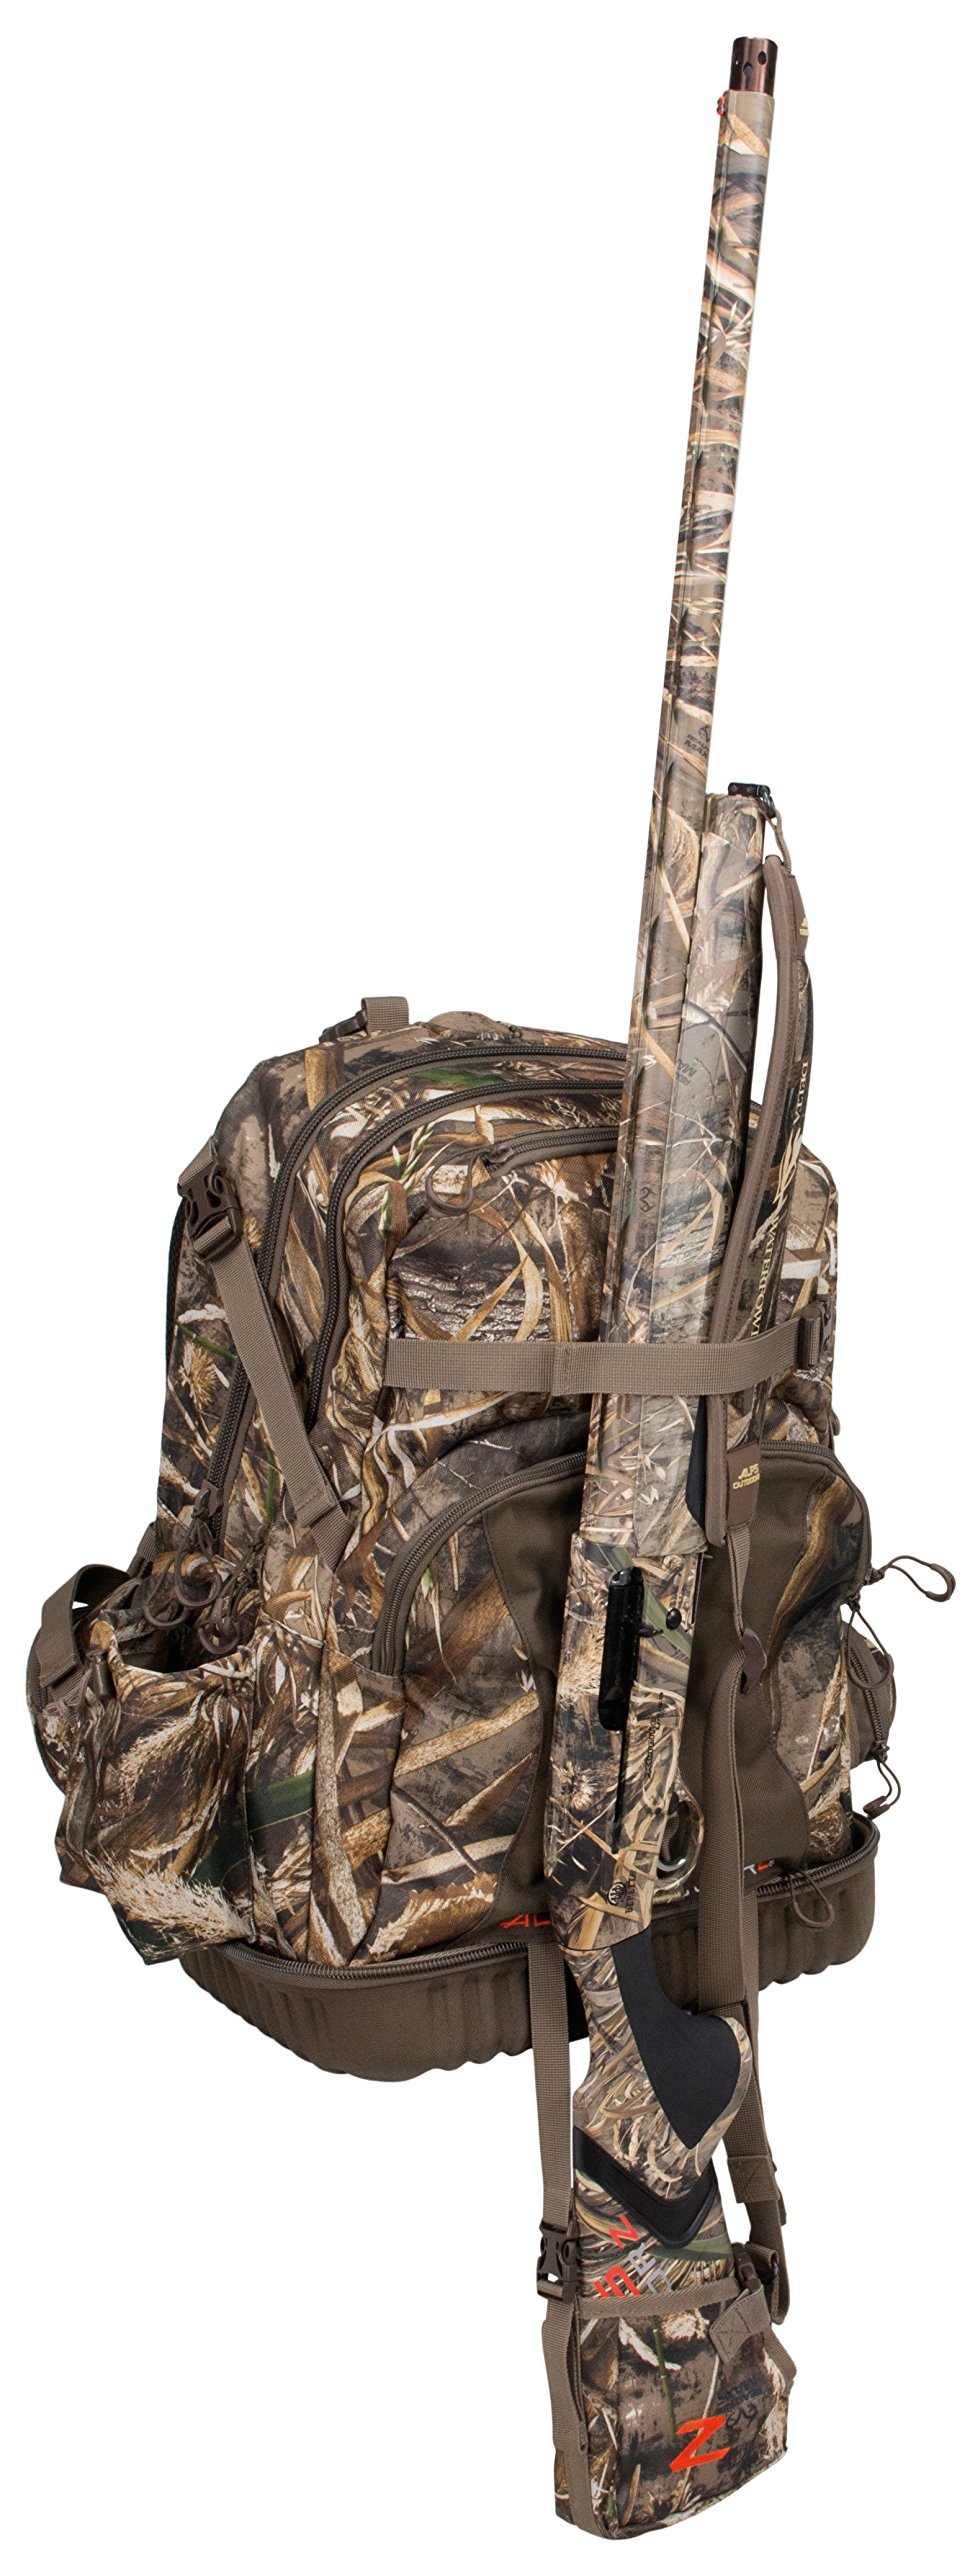 ALPS OutdoorZ Delta Waterfowl Backpack Blind Bag by Delta Waterfowl (Image #4)